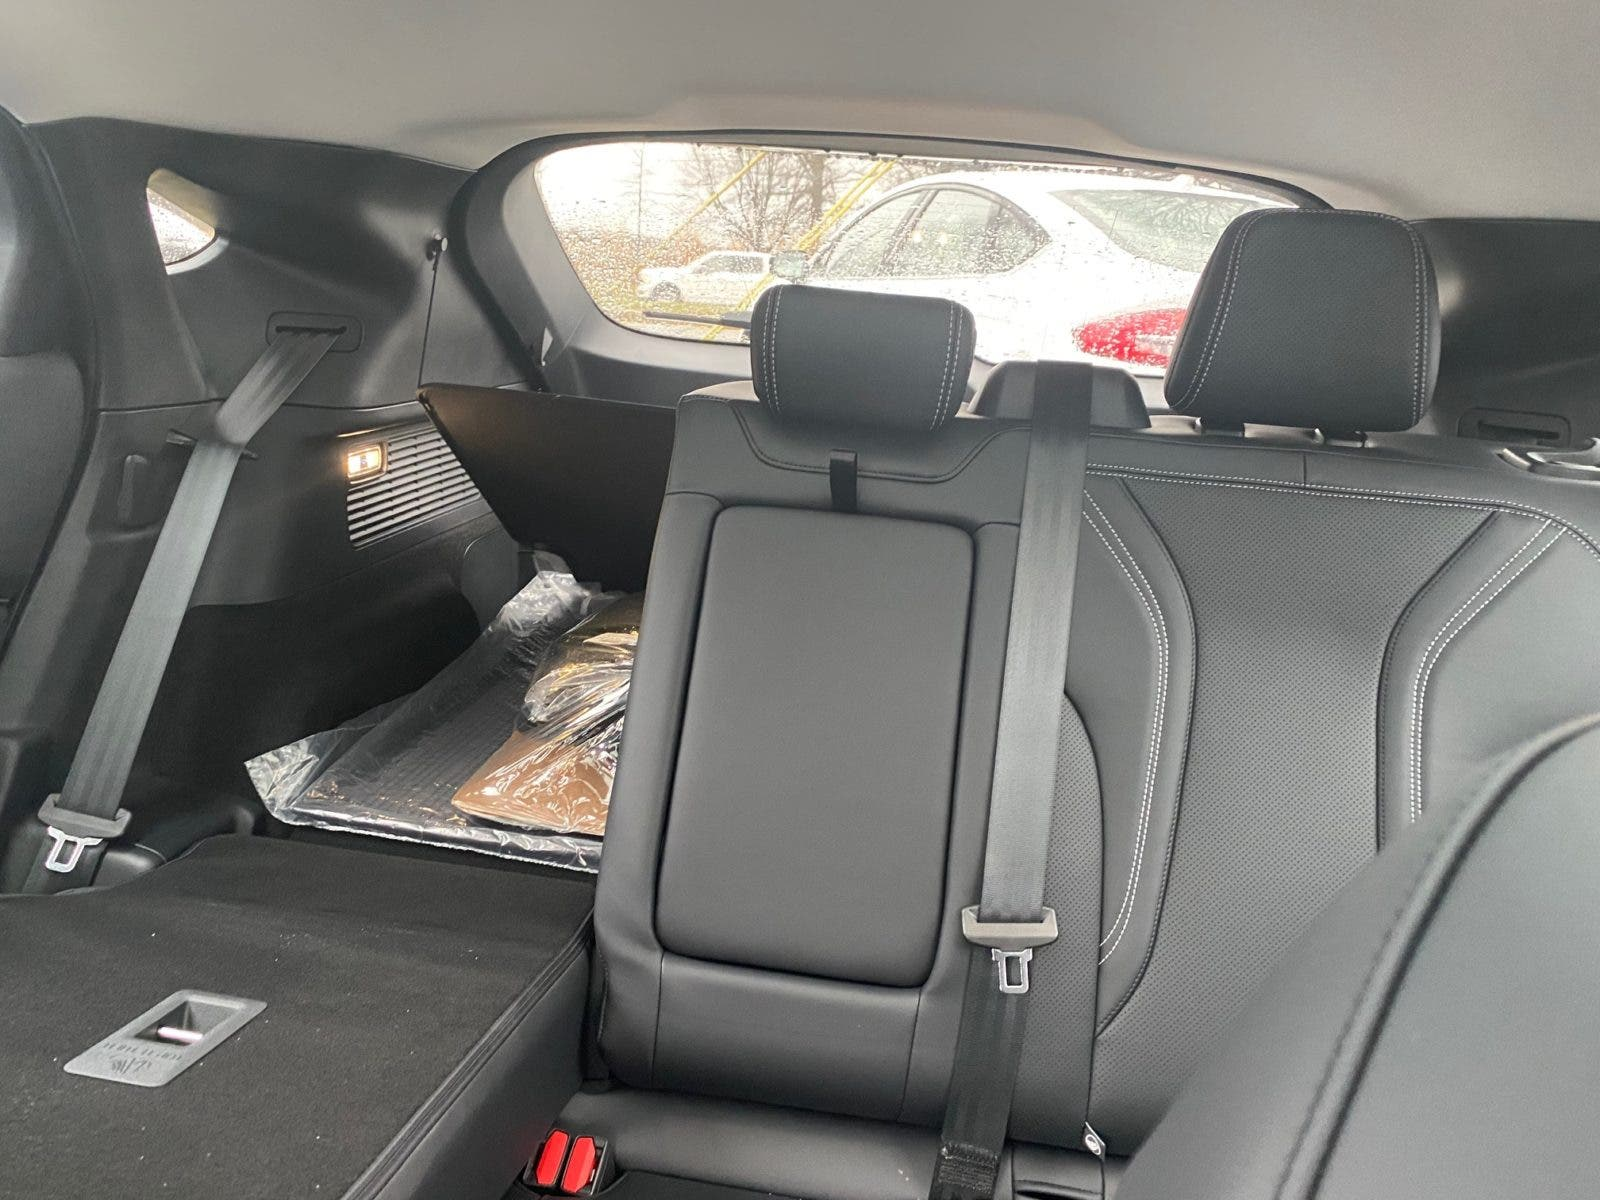 Ford Mustang Mach-E back seats in Bethesda, Virginia